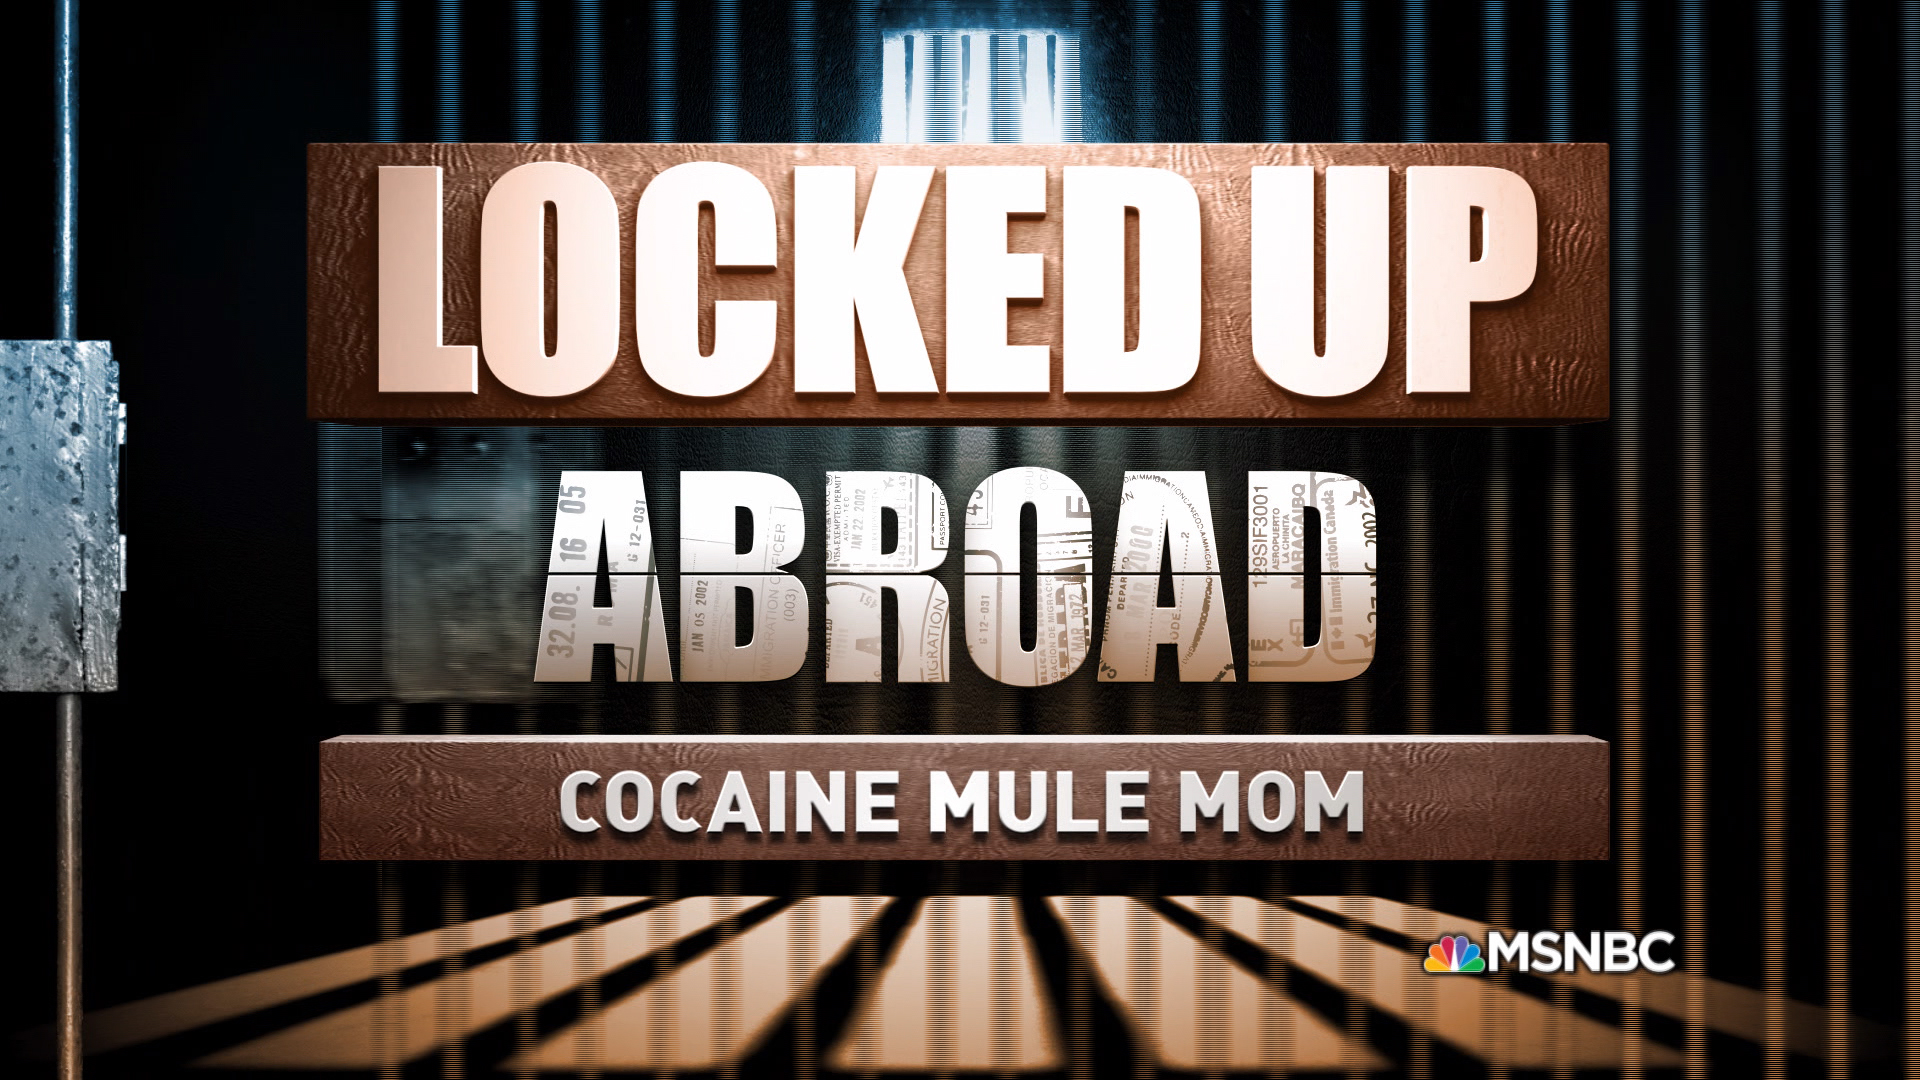 Locked Up Abroad: Cocaine Mule Mom